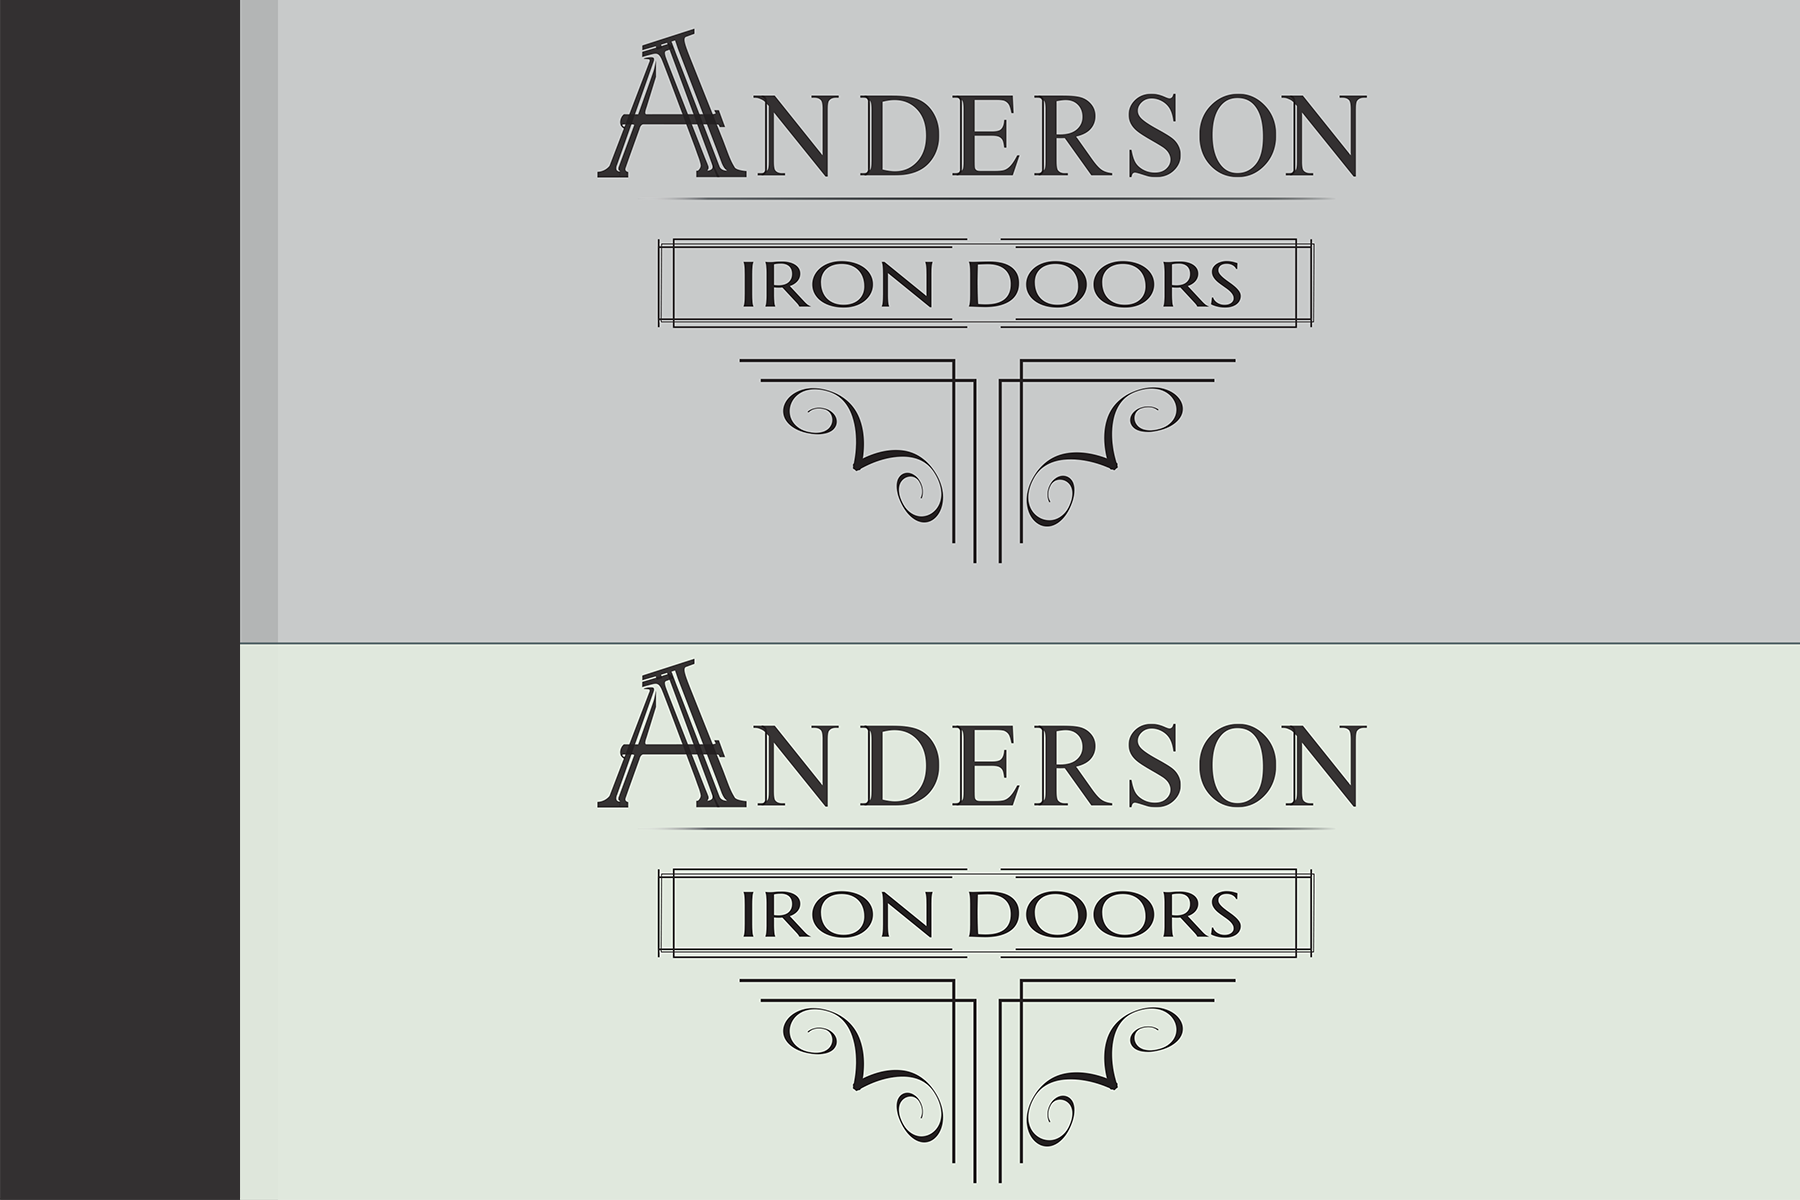 Logo Design by Rozsa Matyas - Entry No. 41 in the Logo Design Contest Artistic Logo Design for Anderson Iron Doors.